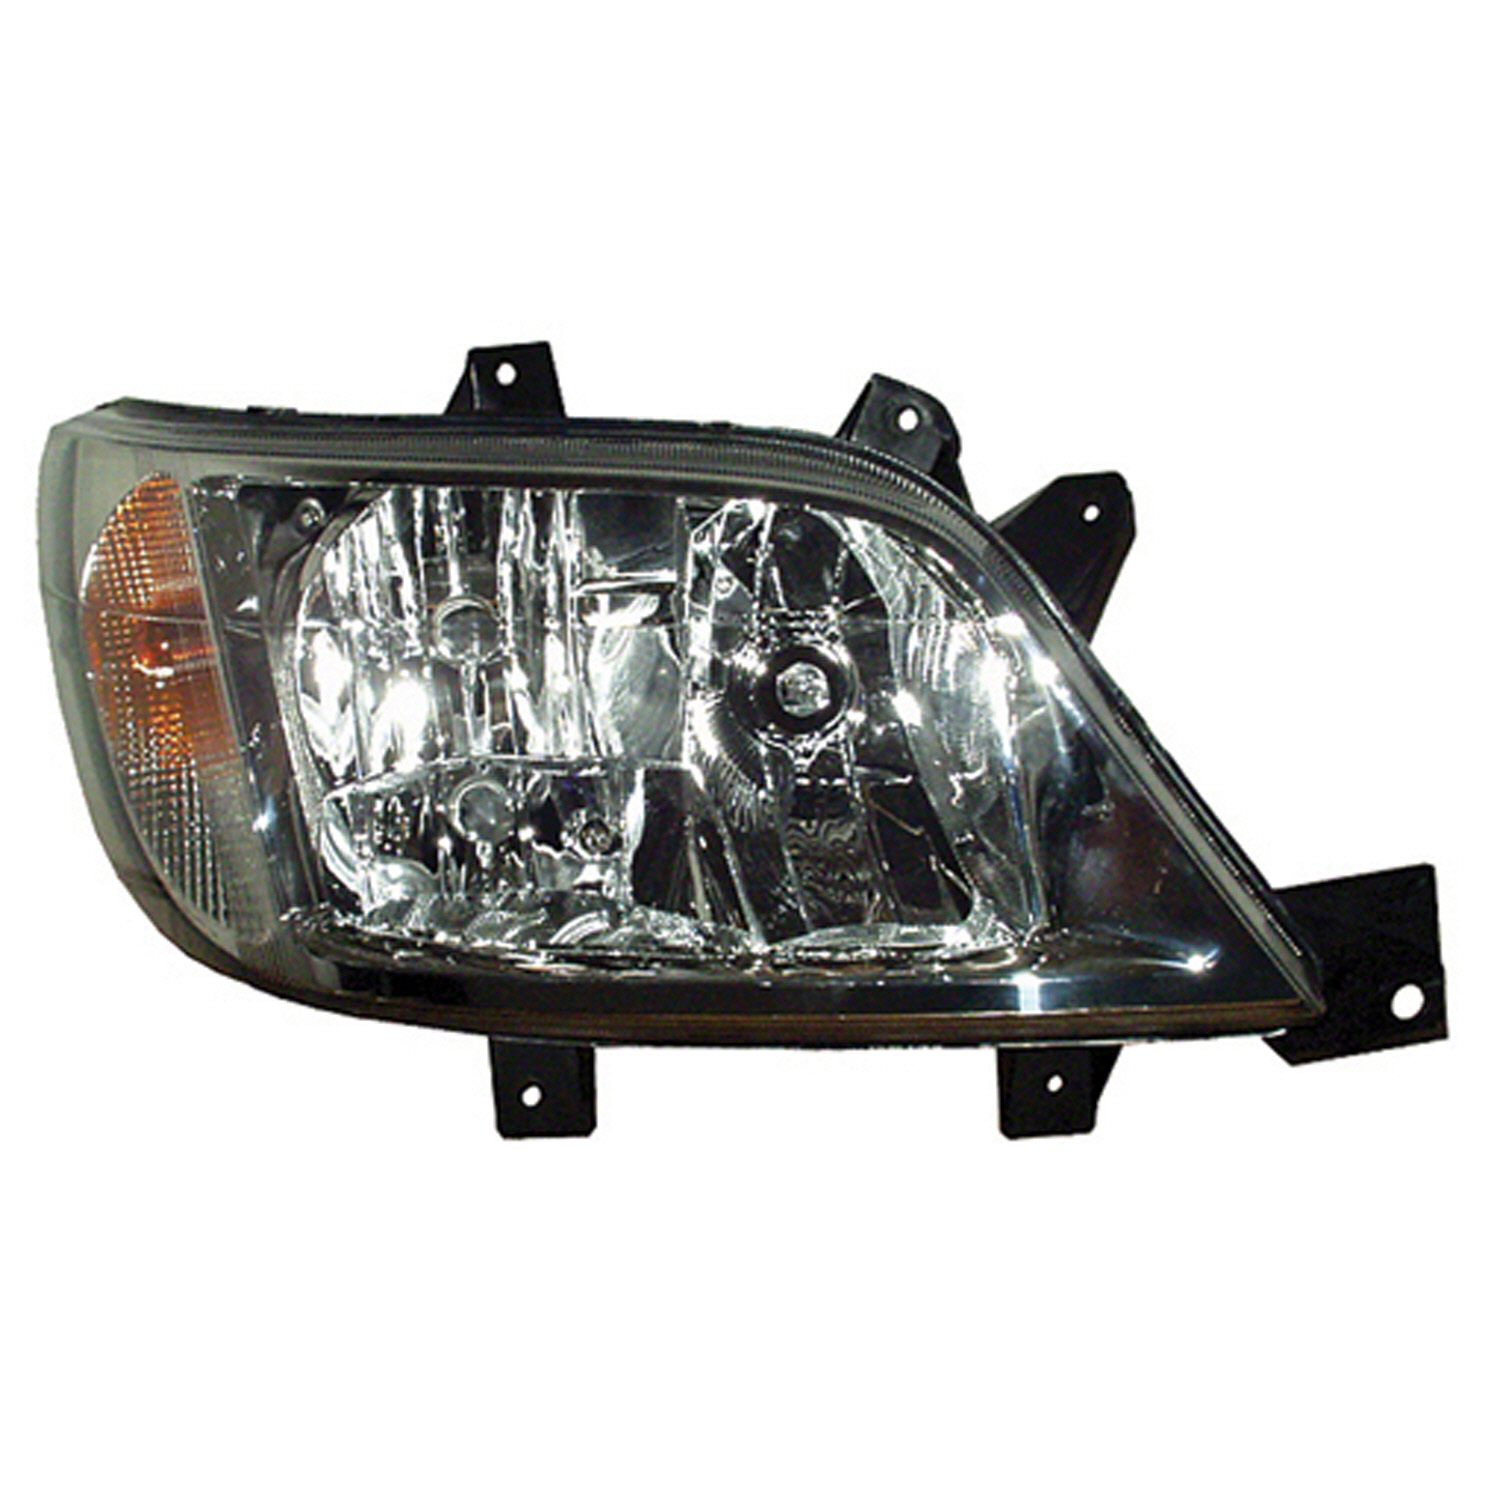 2003-2006 Dodge Sprinter 2500 Passenger Side Right Head